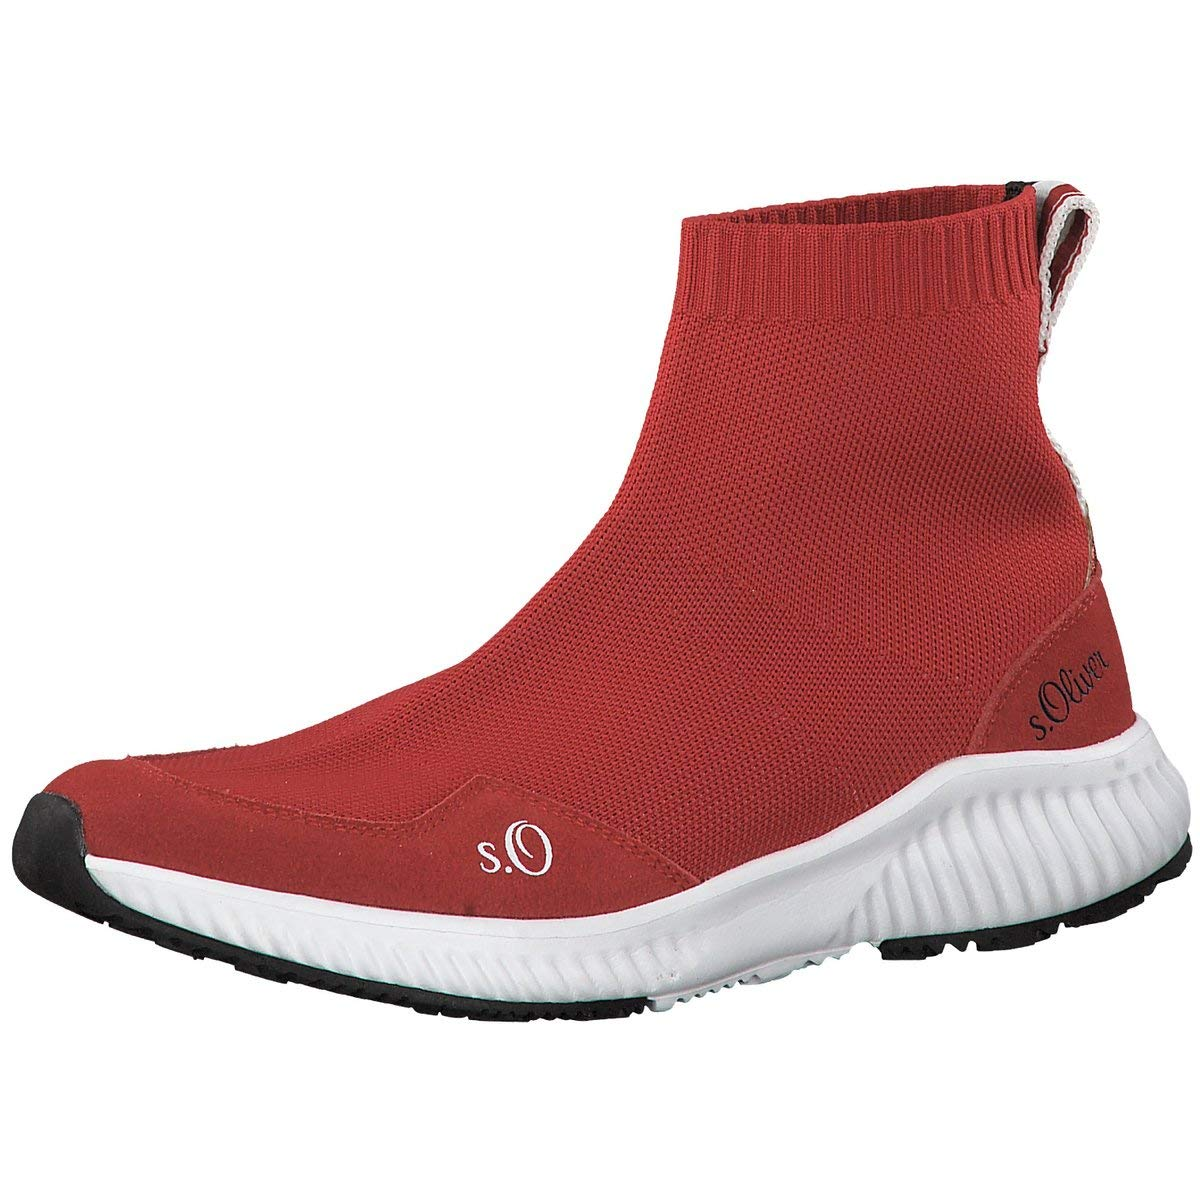 S.Oliver Damen Turnschuhe Woms Stiefel 5-5-25400-22 500 rot 604797